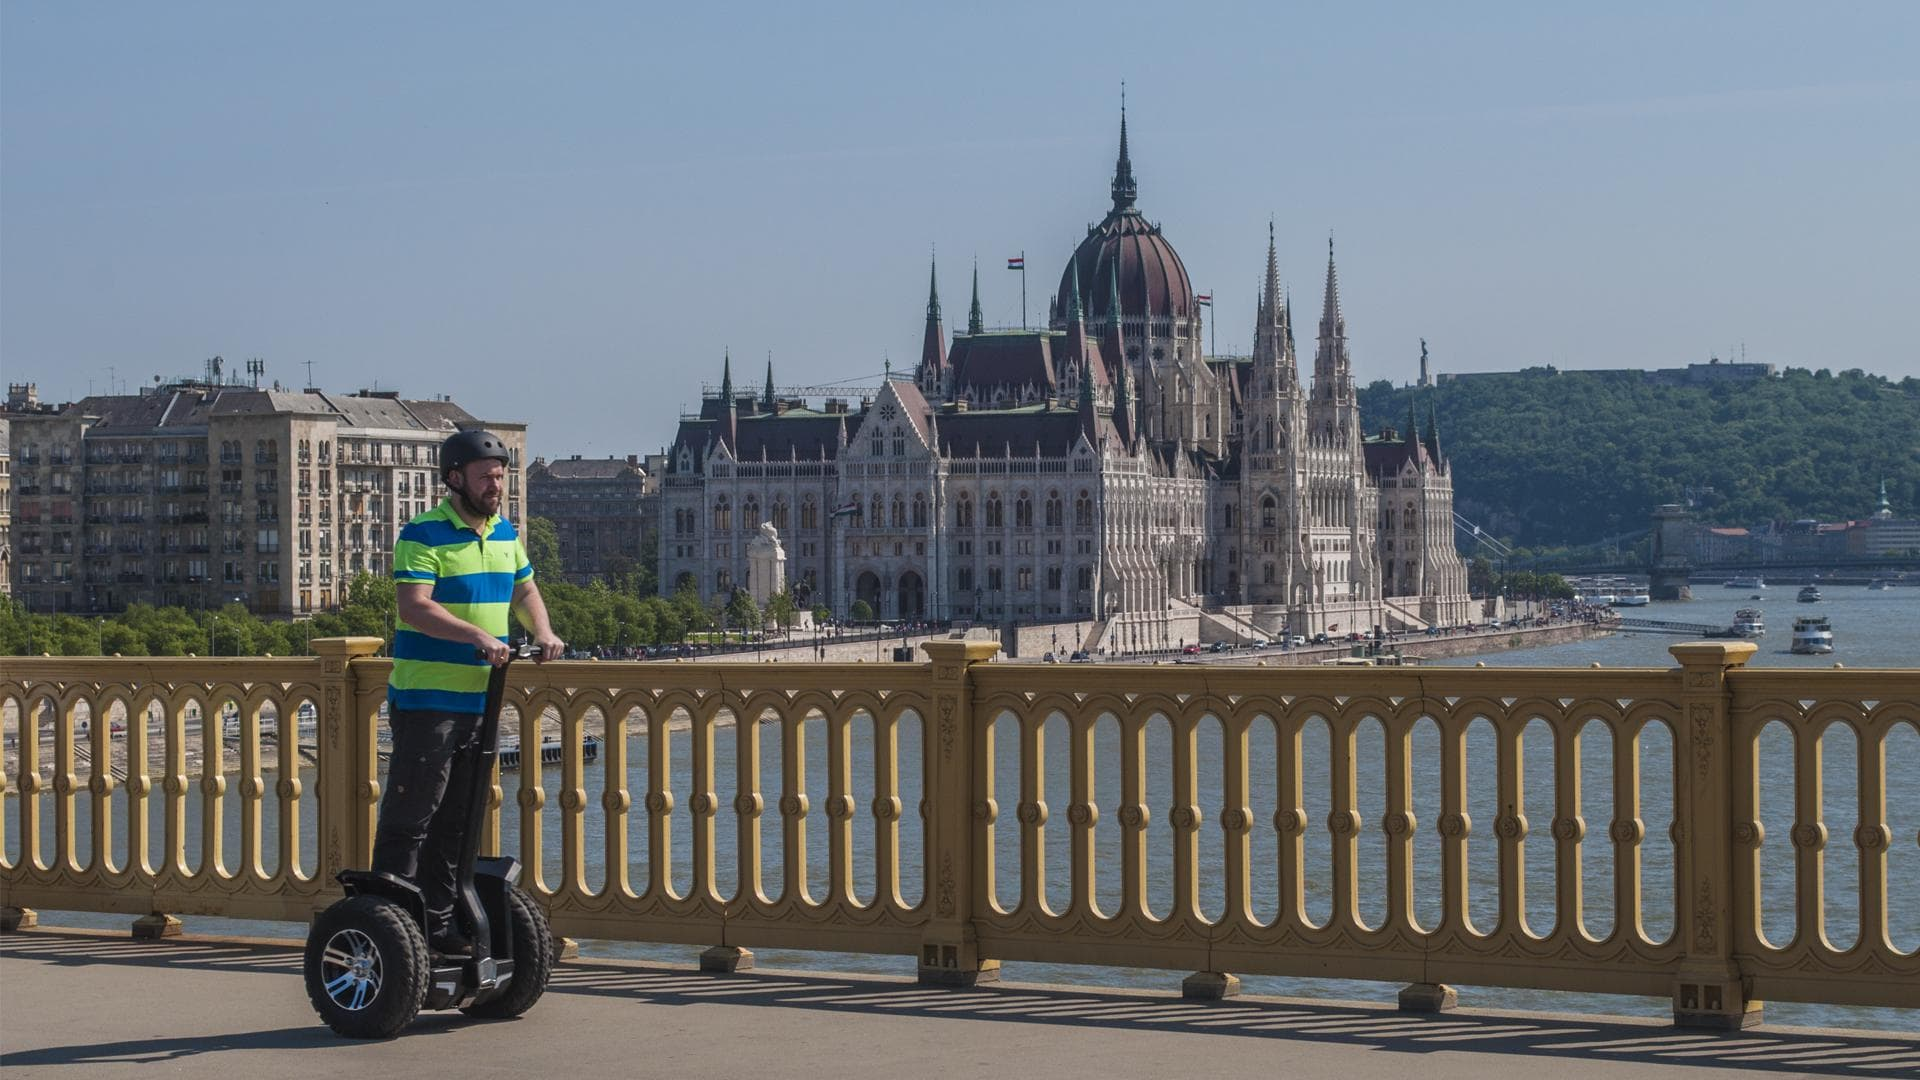 Tours in heart of the city. Top sights in Budapest: Parliament, Danube, Margaret Island - Budapestrolling